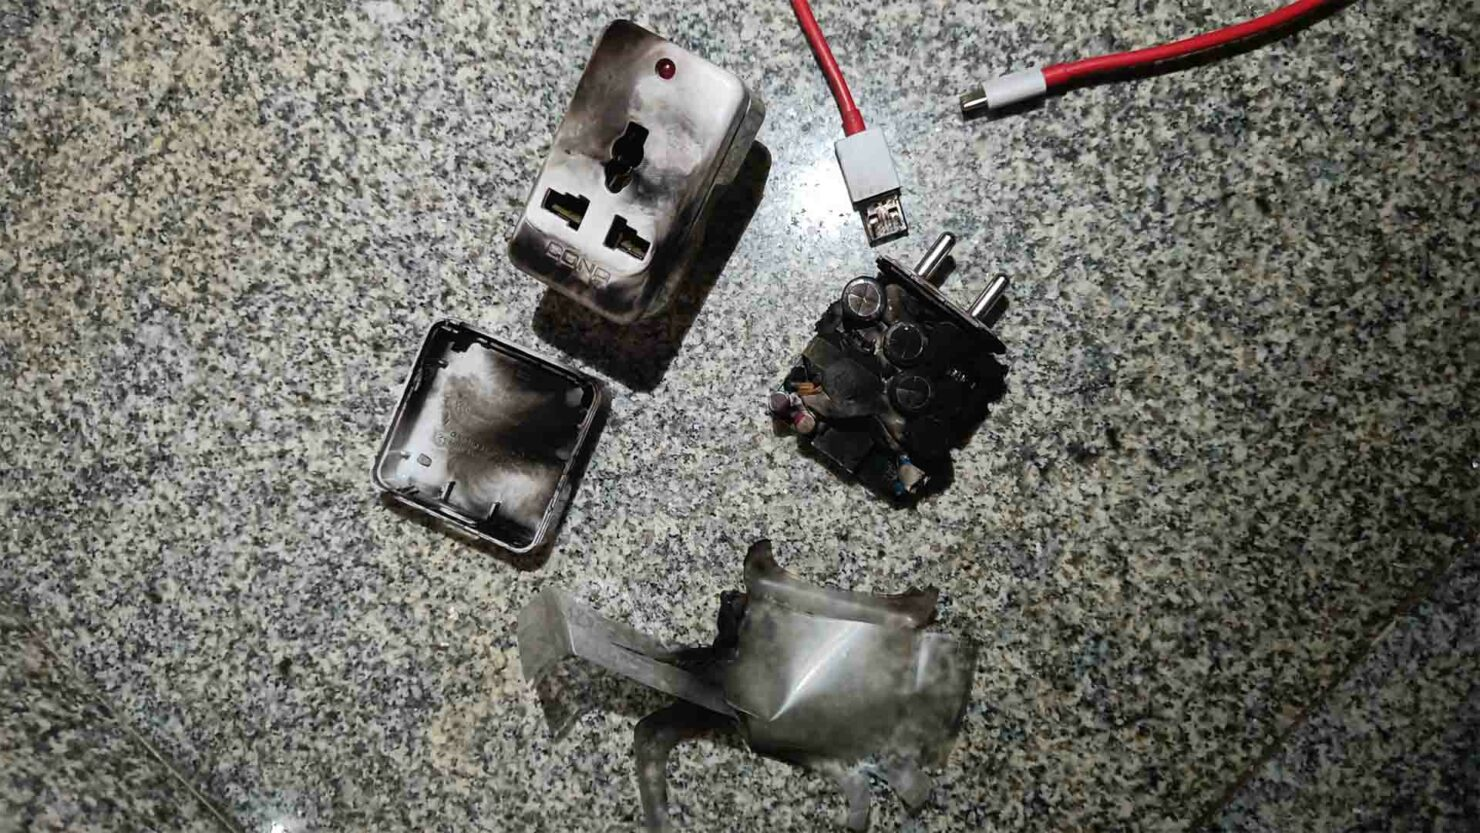 OnePlus Nord 2 Warp Charger Exploded but Company Said It Was Due to Voltage Fluctuation, Not a Manufacturing Defect